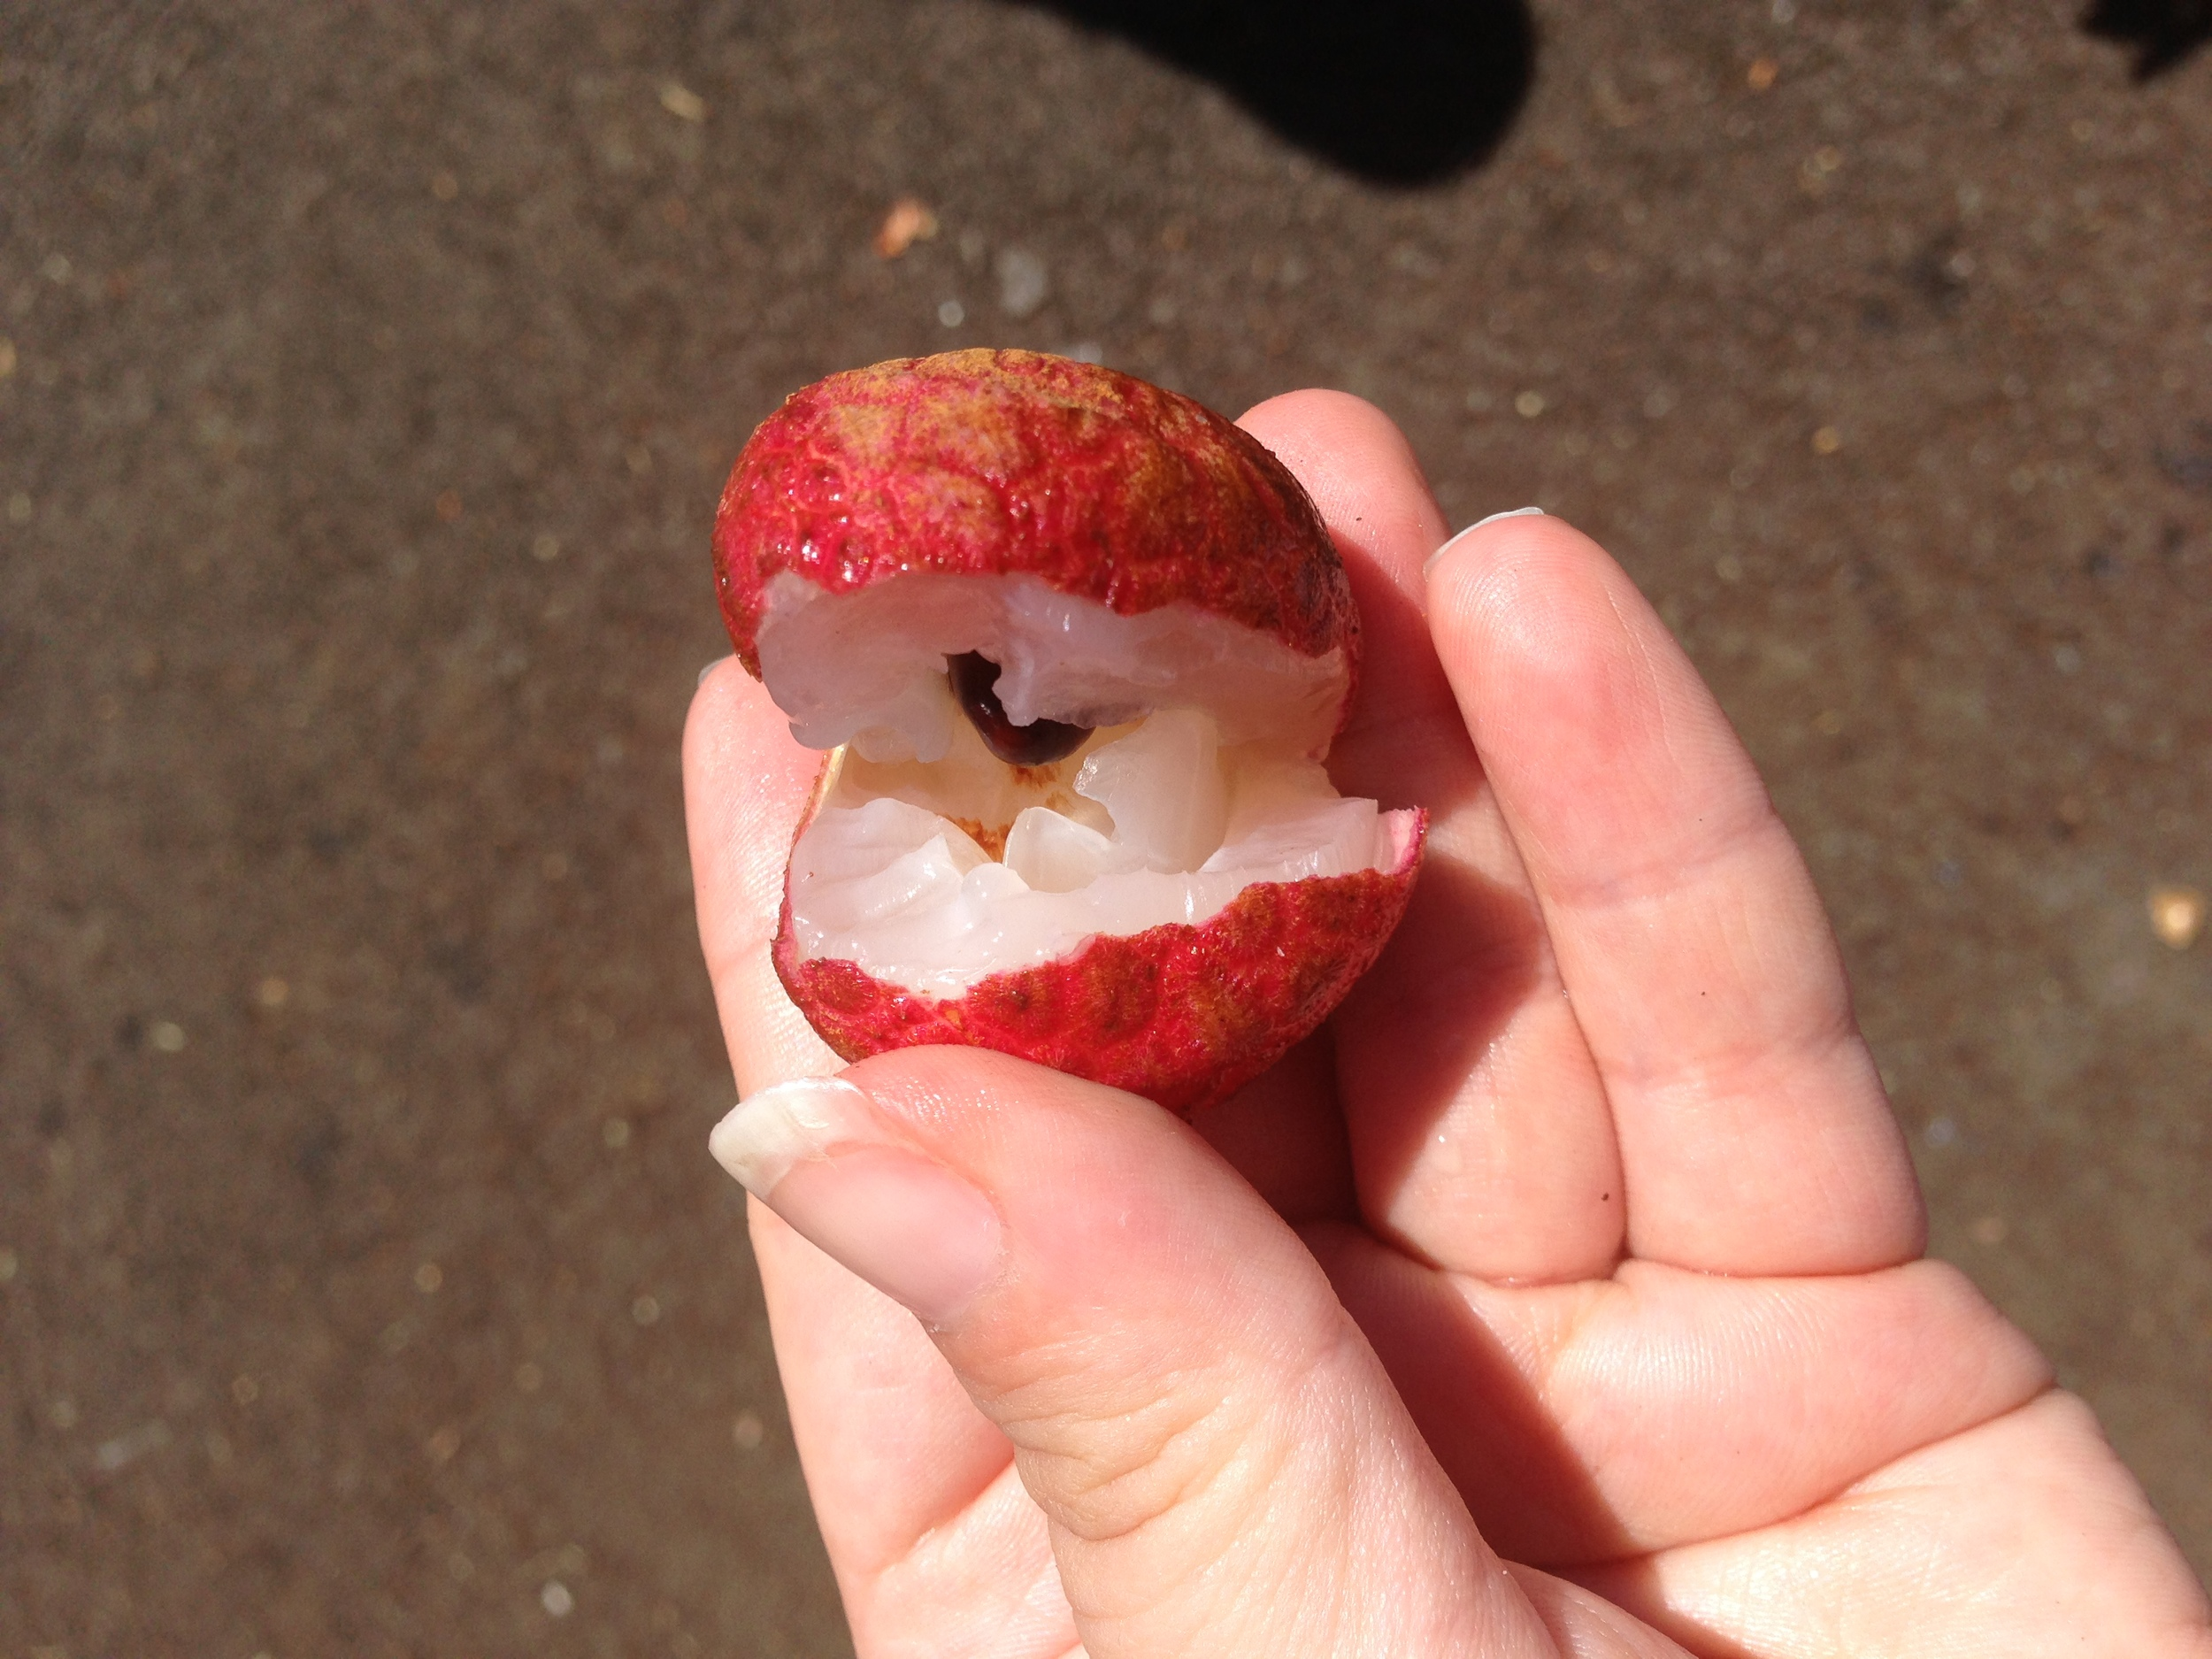 It's a lychee, from  my trip to Hawaii,  but still a delicious fruit that makes me think of summer :)